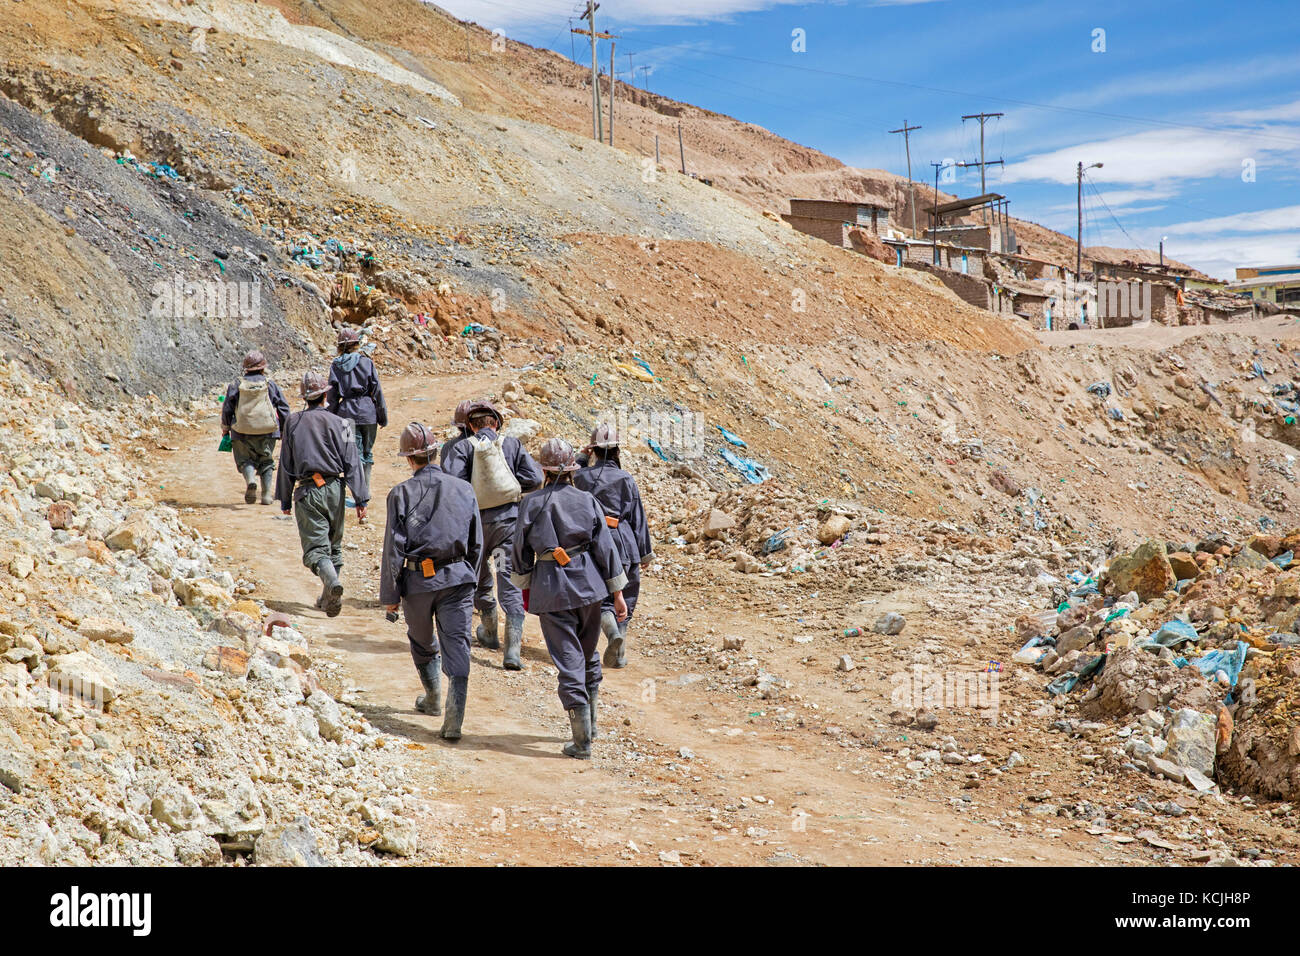 Tourists with guide visiting silver mine on the Cerro Rico de Potosi, Tomás Frías, Bolivia - Stock Image